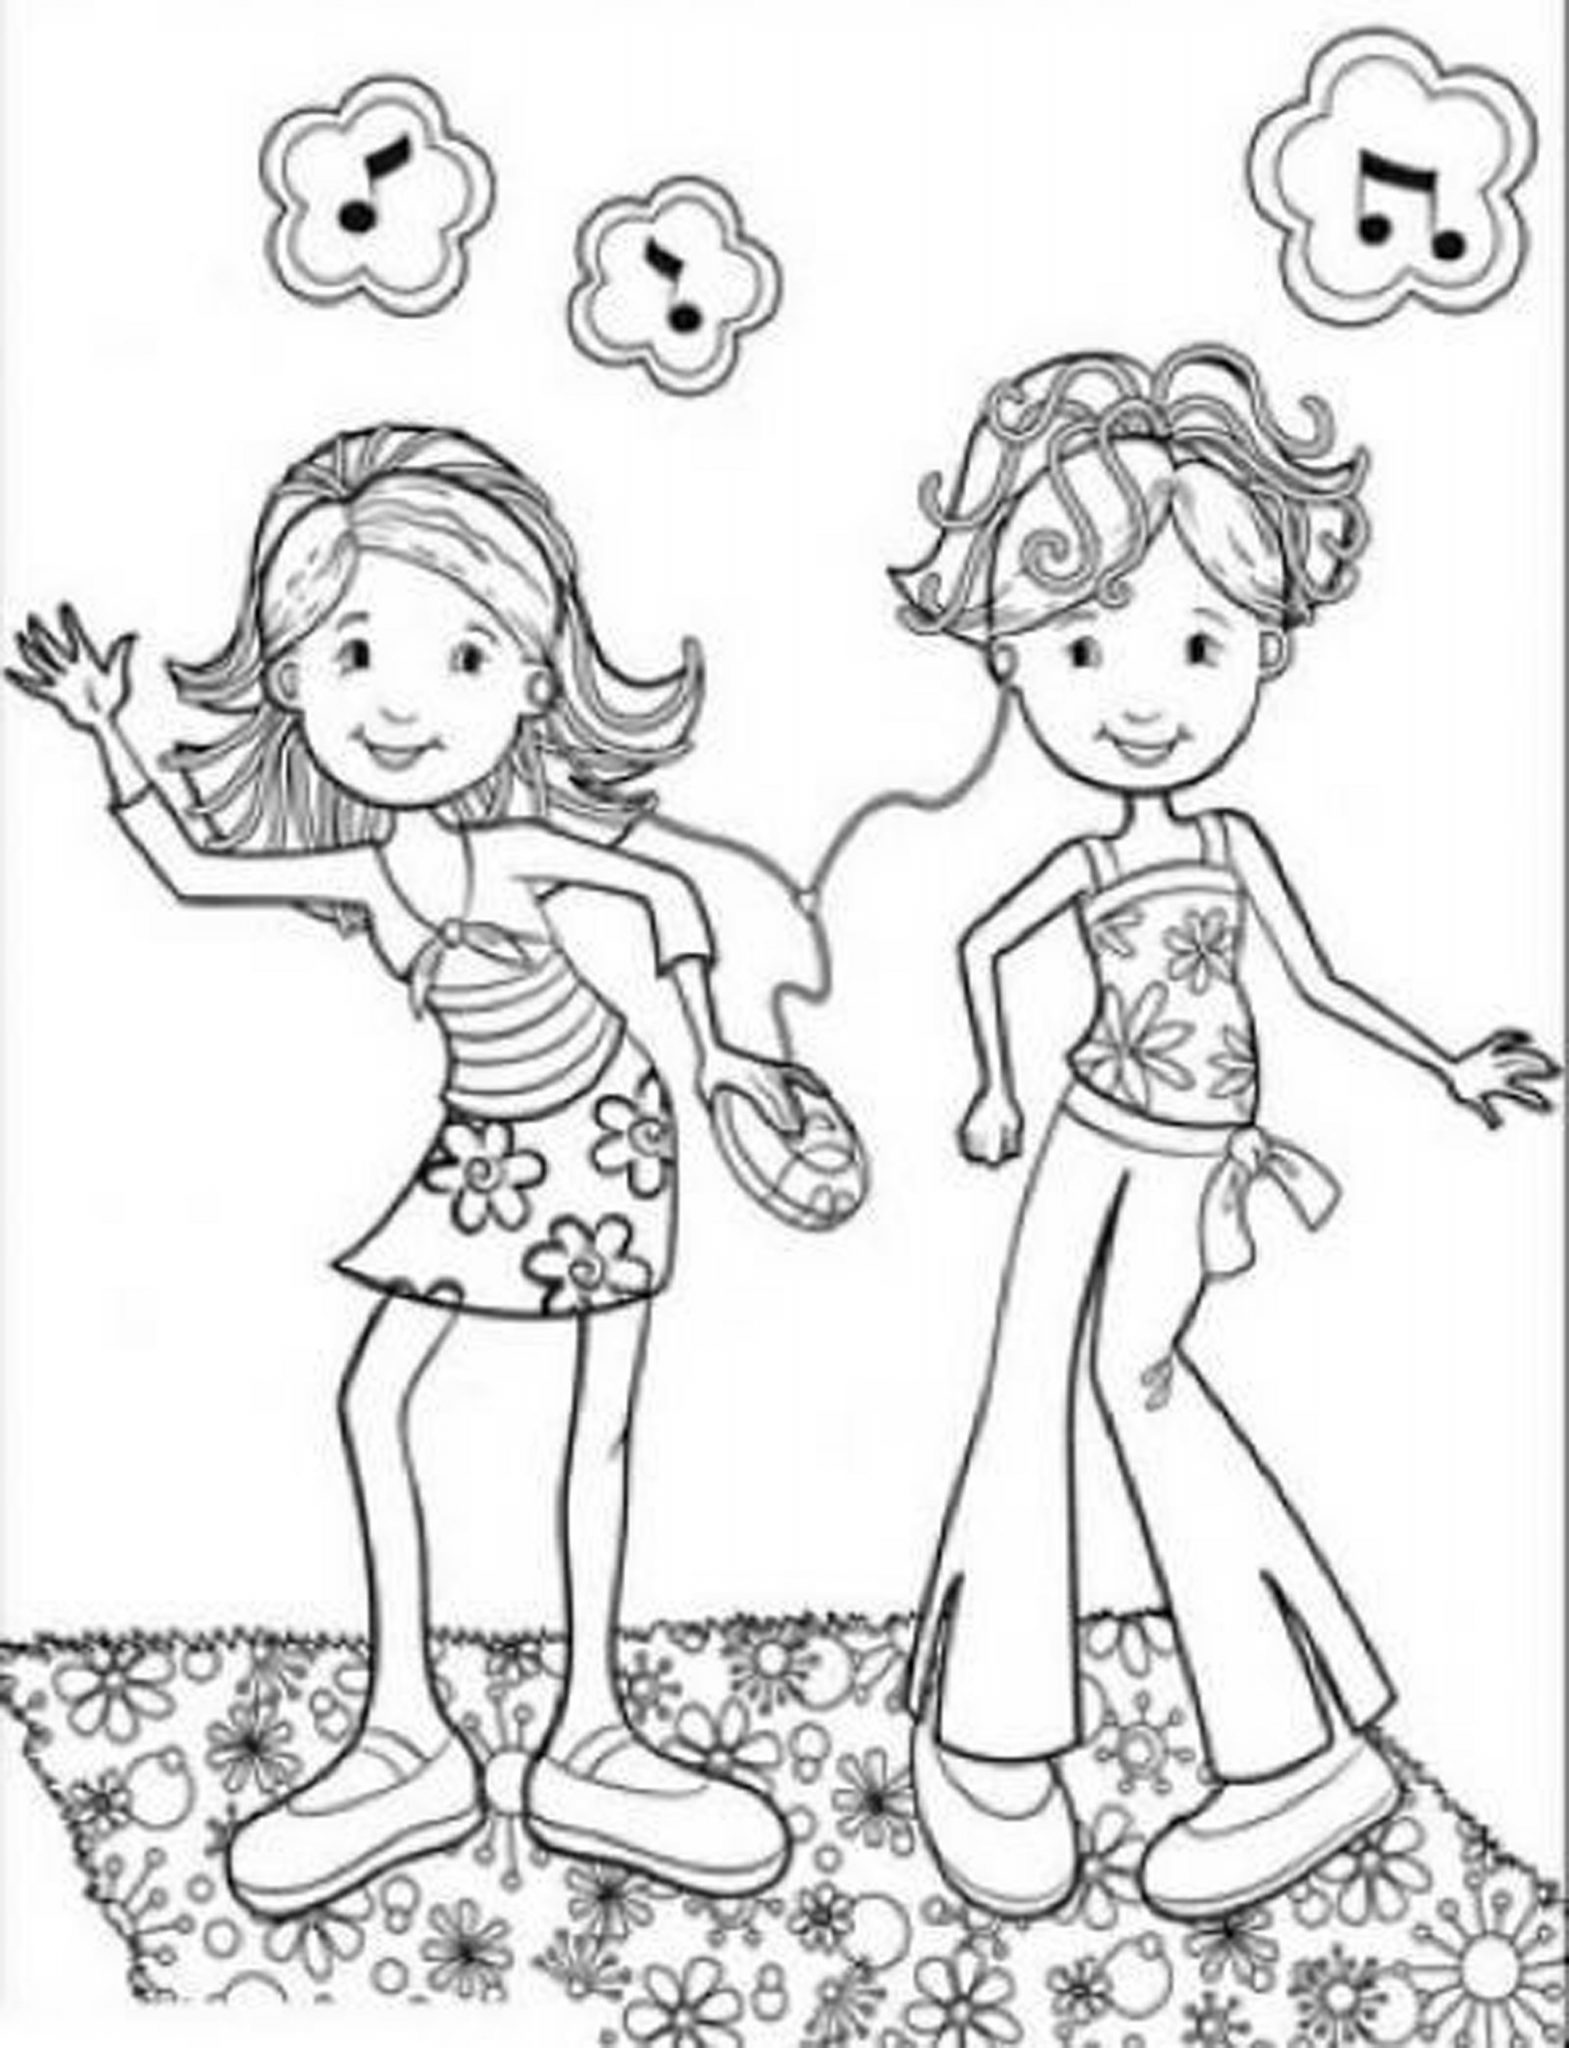 color sheets for girls kids n funcom 65 coloring pages of groovy girls sheets color for girls